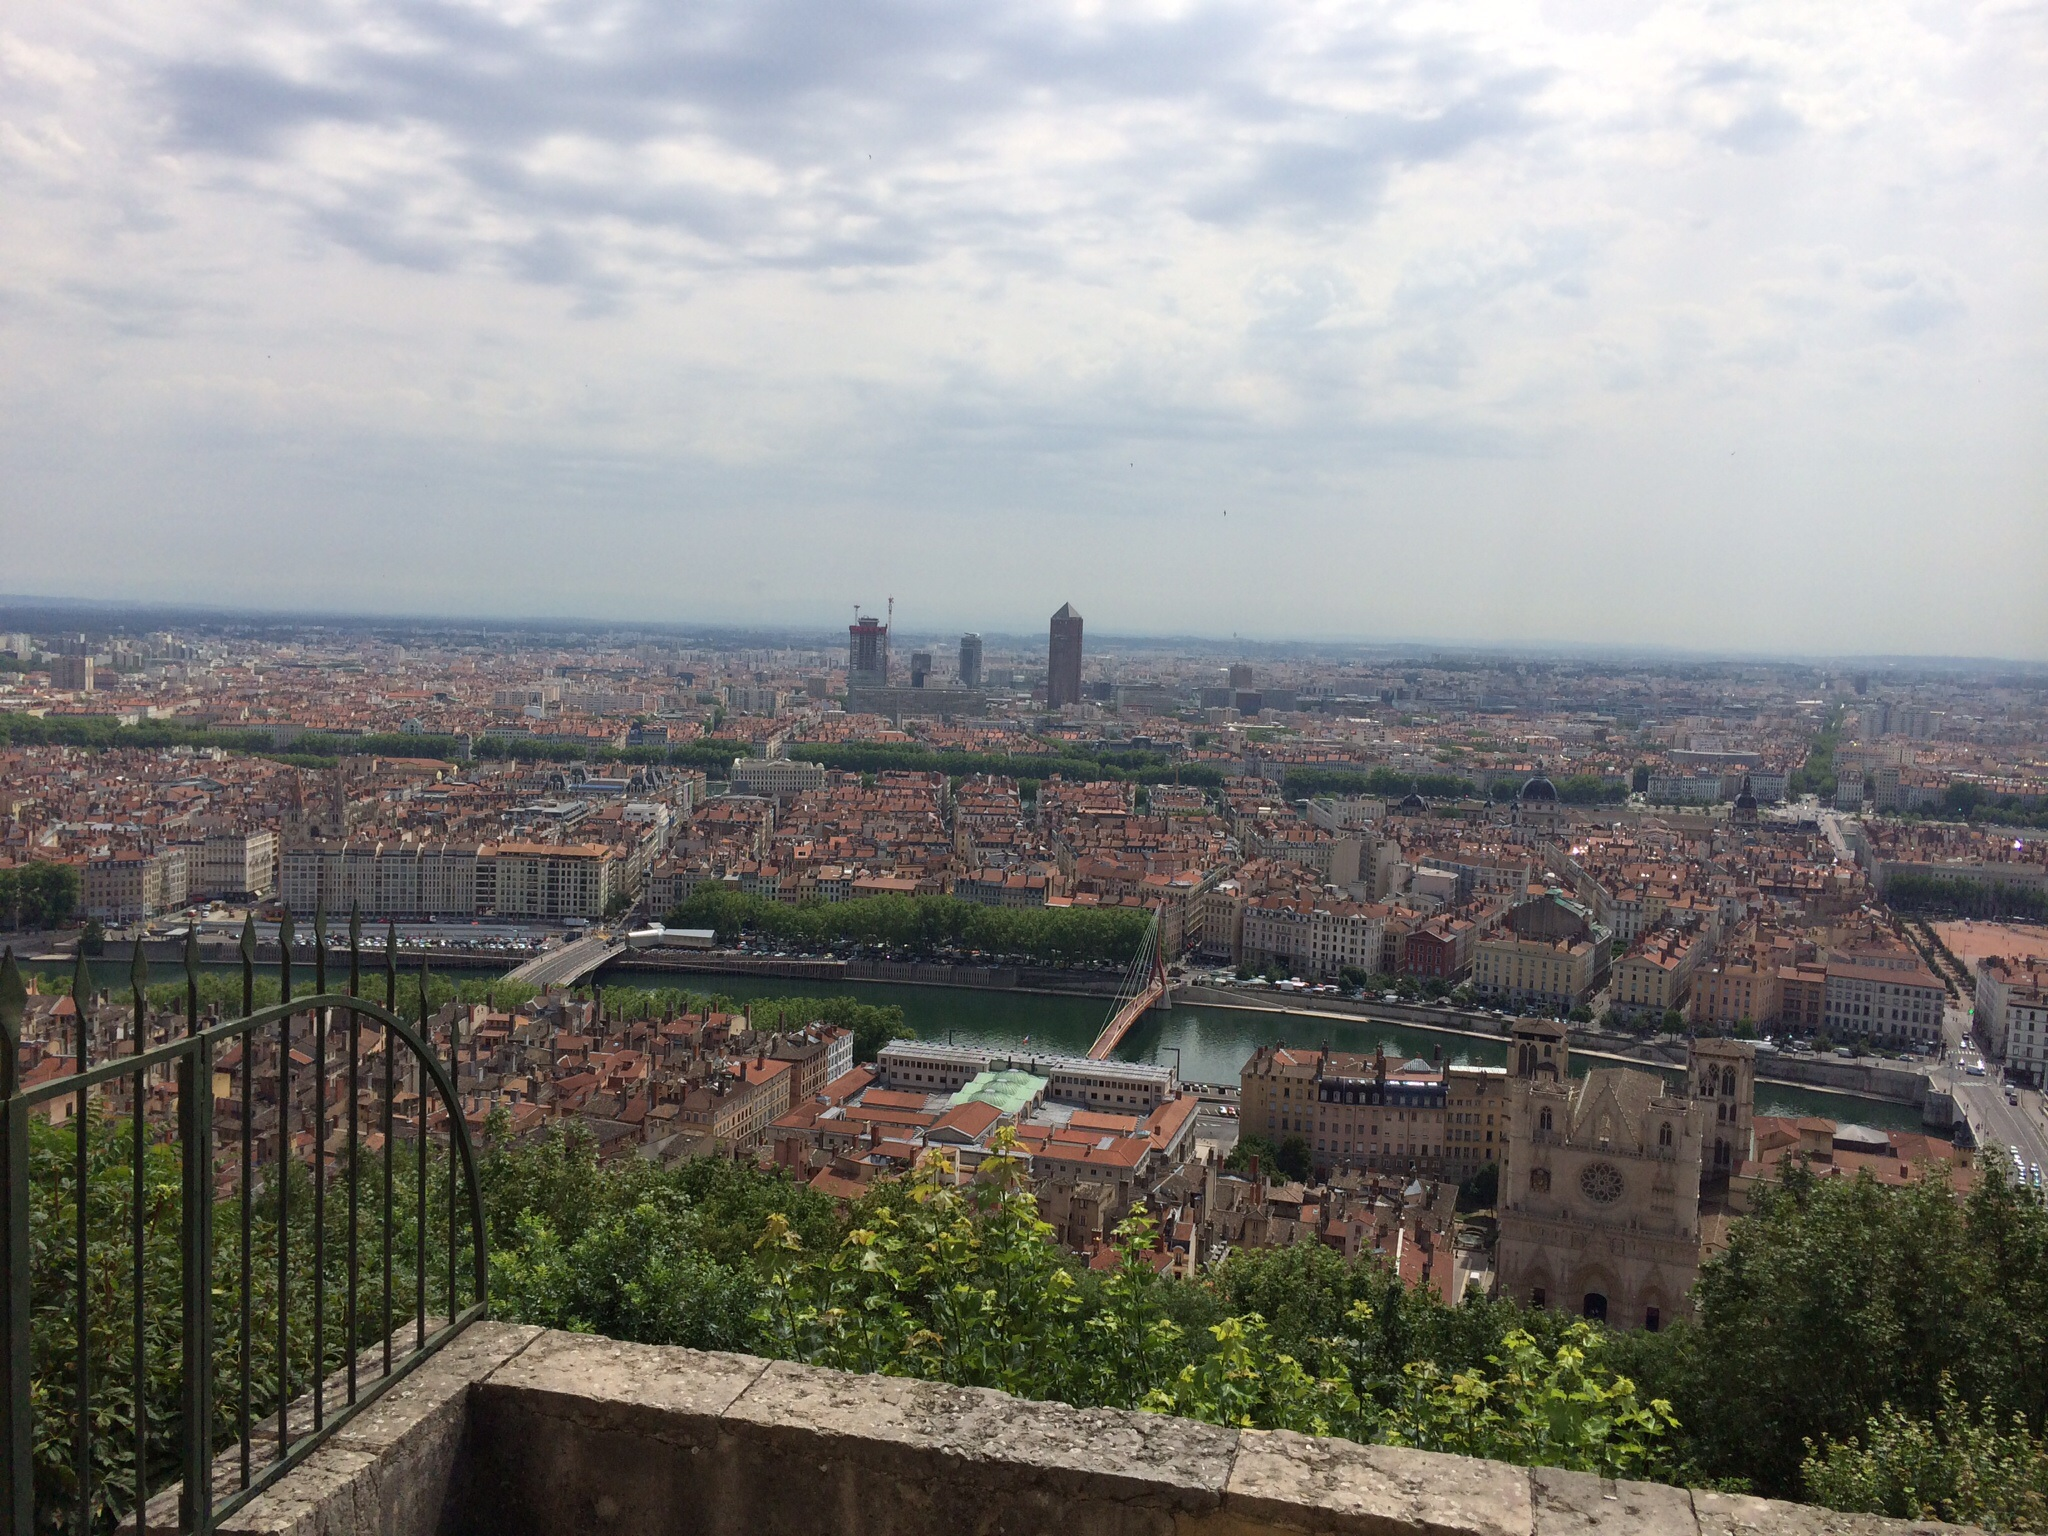 This was taken from the back of the Notre Dame Cathedral that overlooks this city of 1.6 million inhabitants.